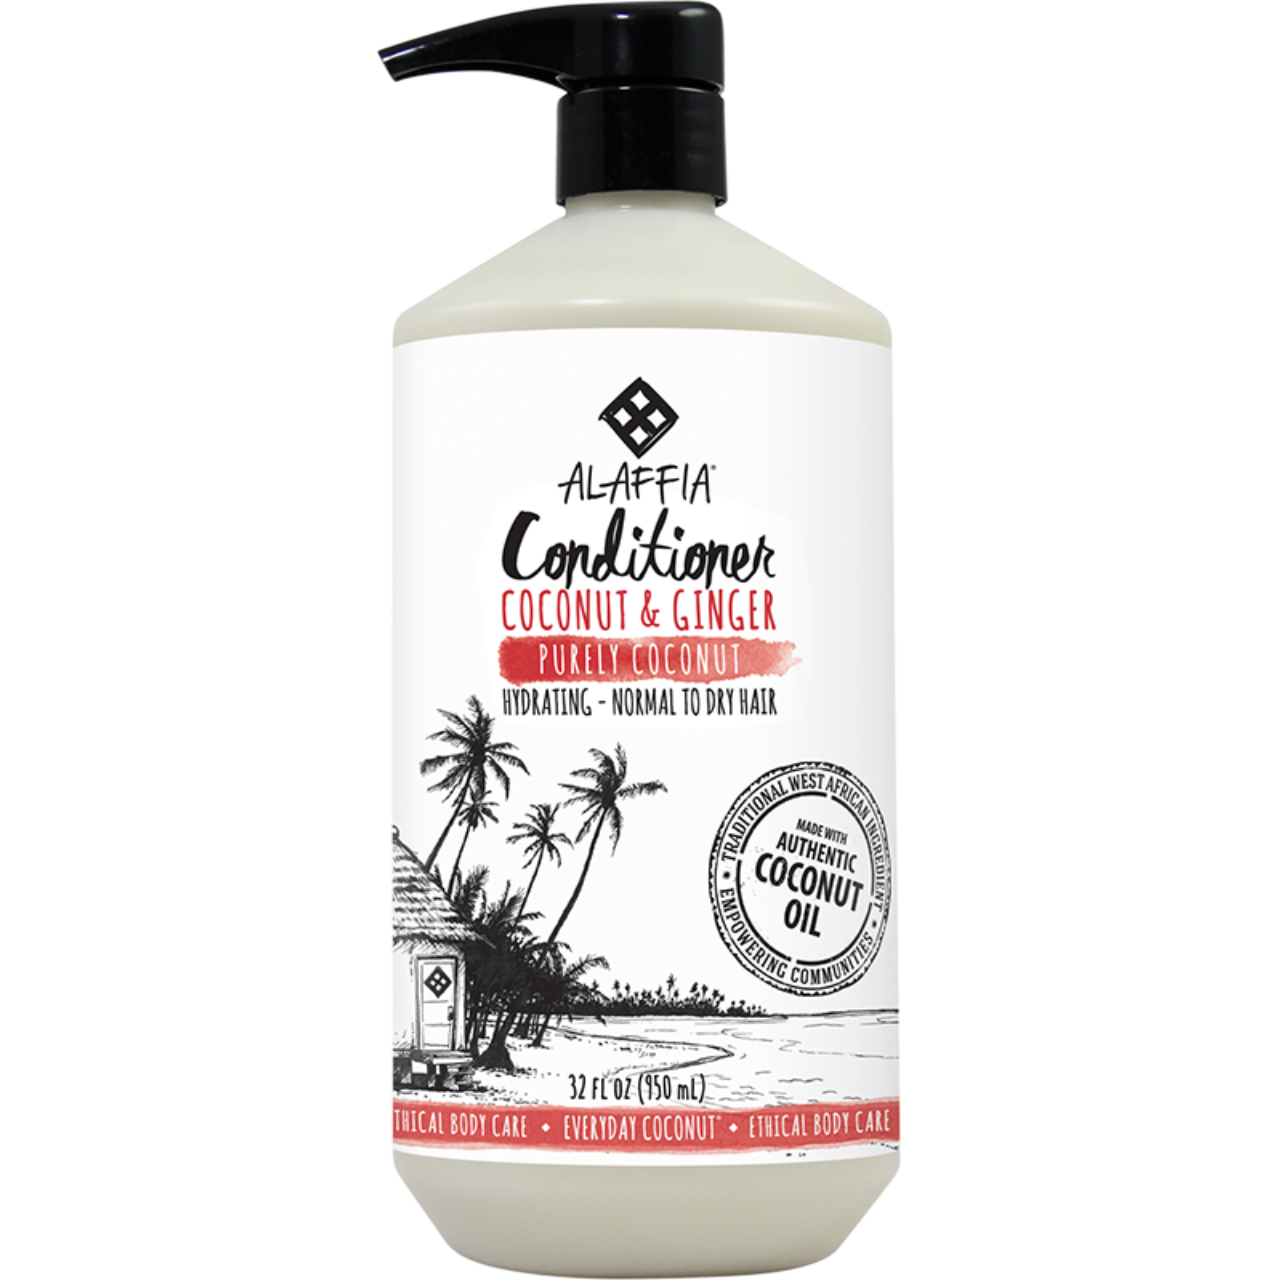 Alaffia Coconut & Ginger Conditioner -Purely Coconut